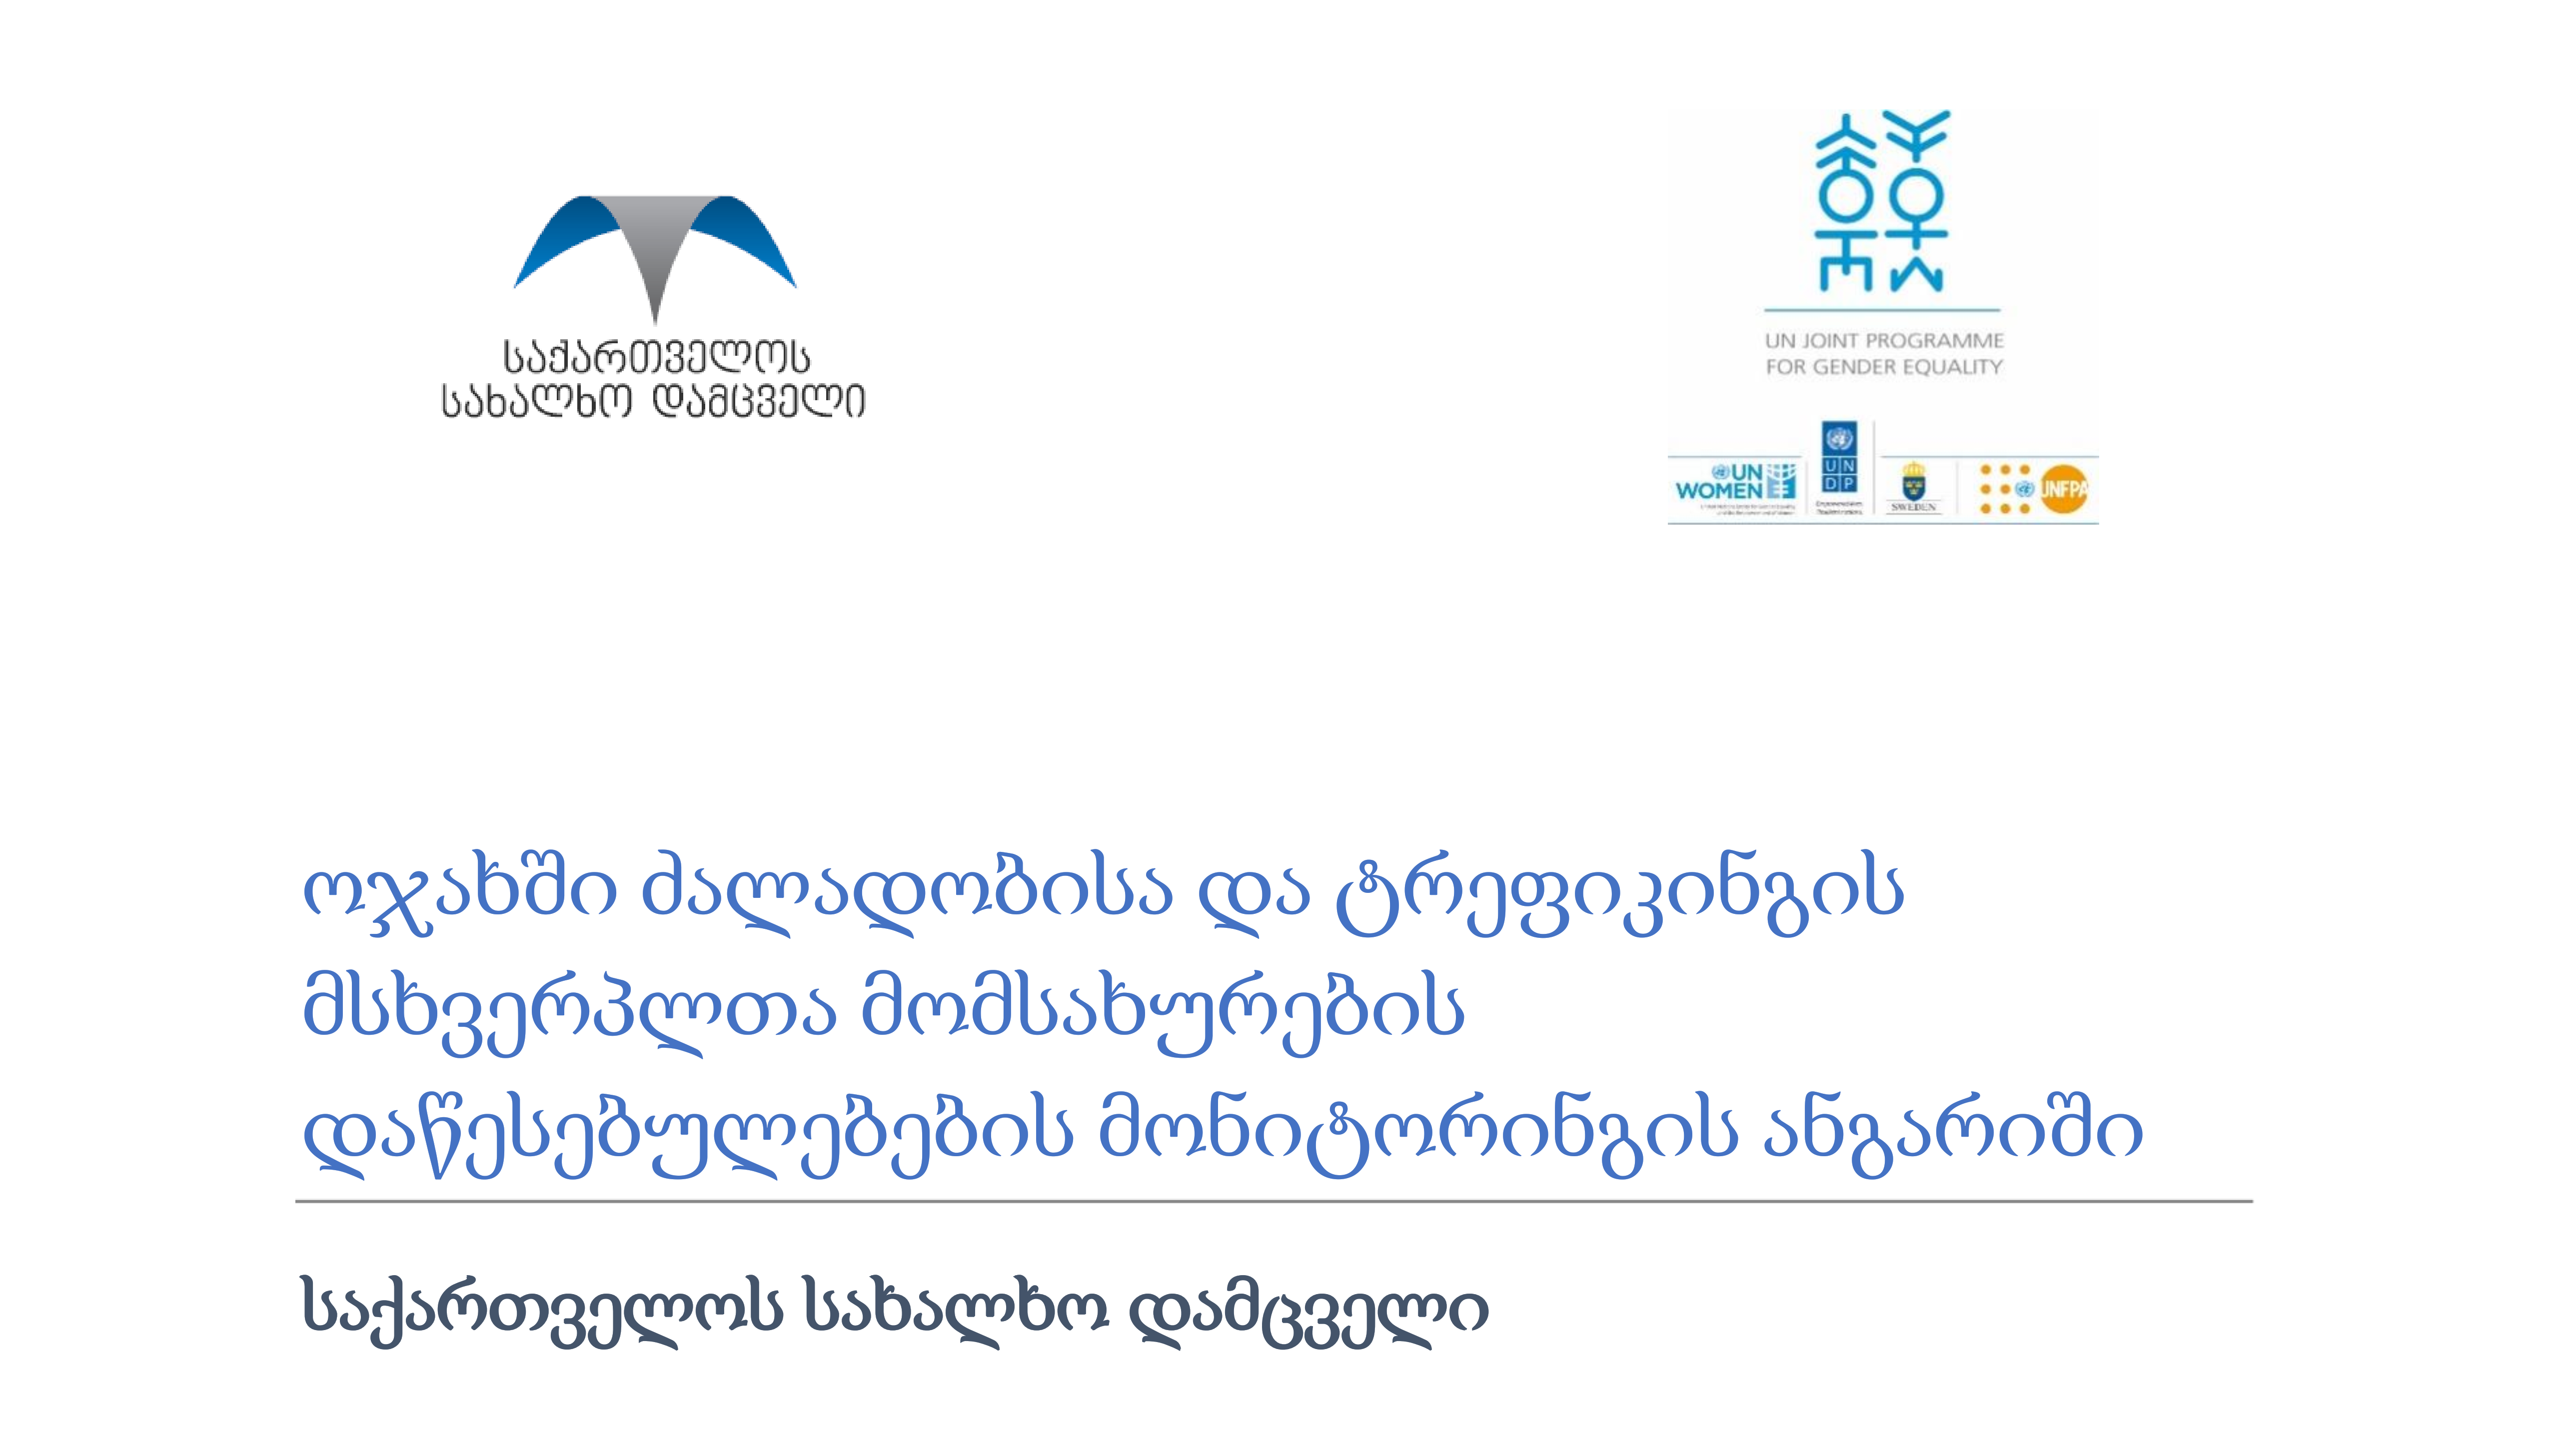 Monitoring Report on service centers (shelters) for victims of violence against women, domestic violence and trafficking 2020